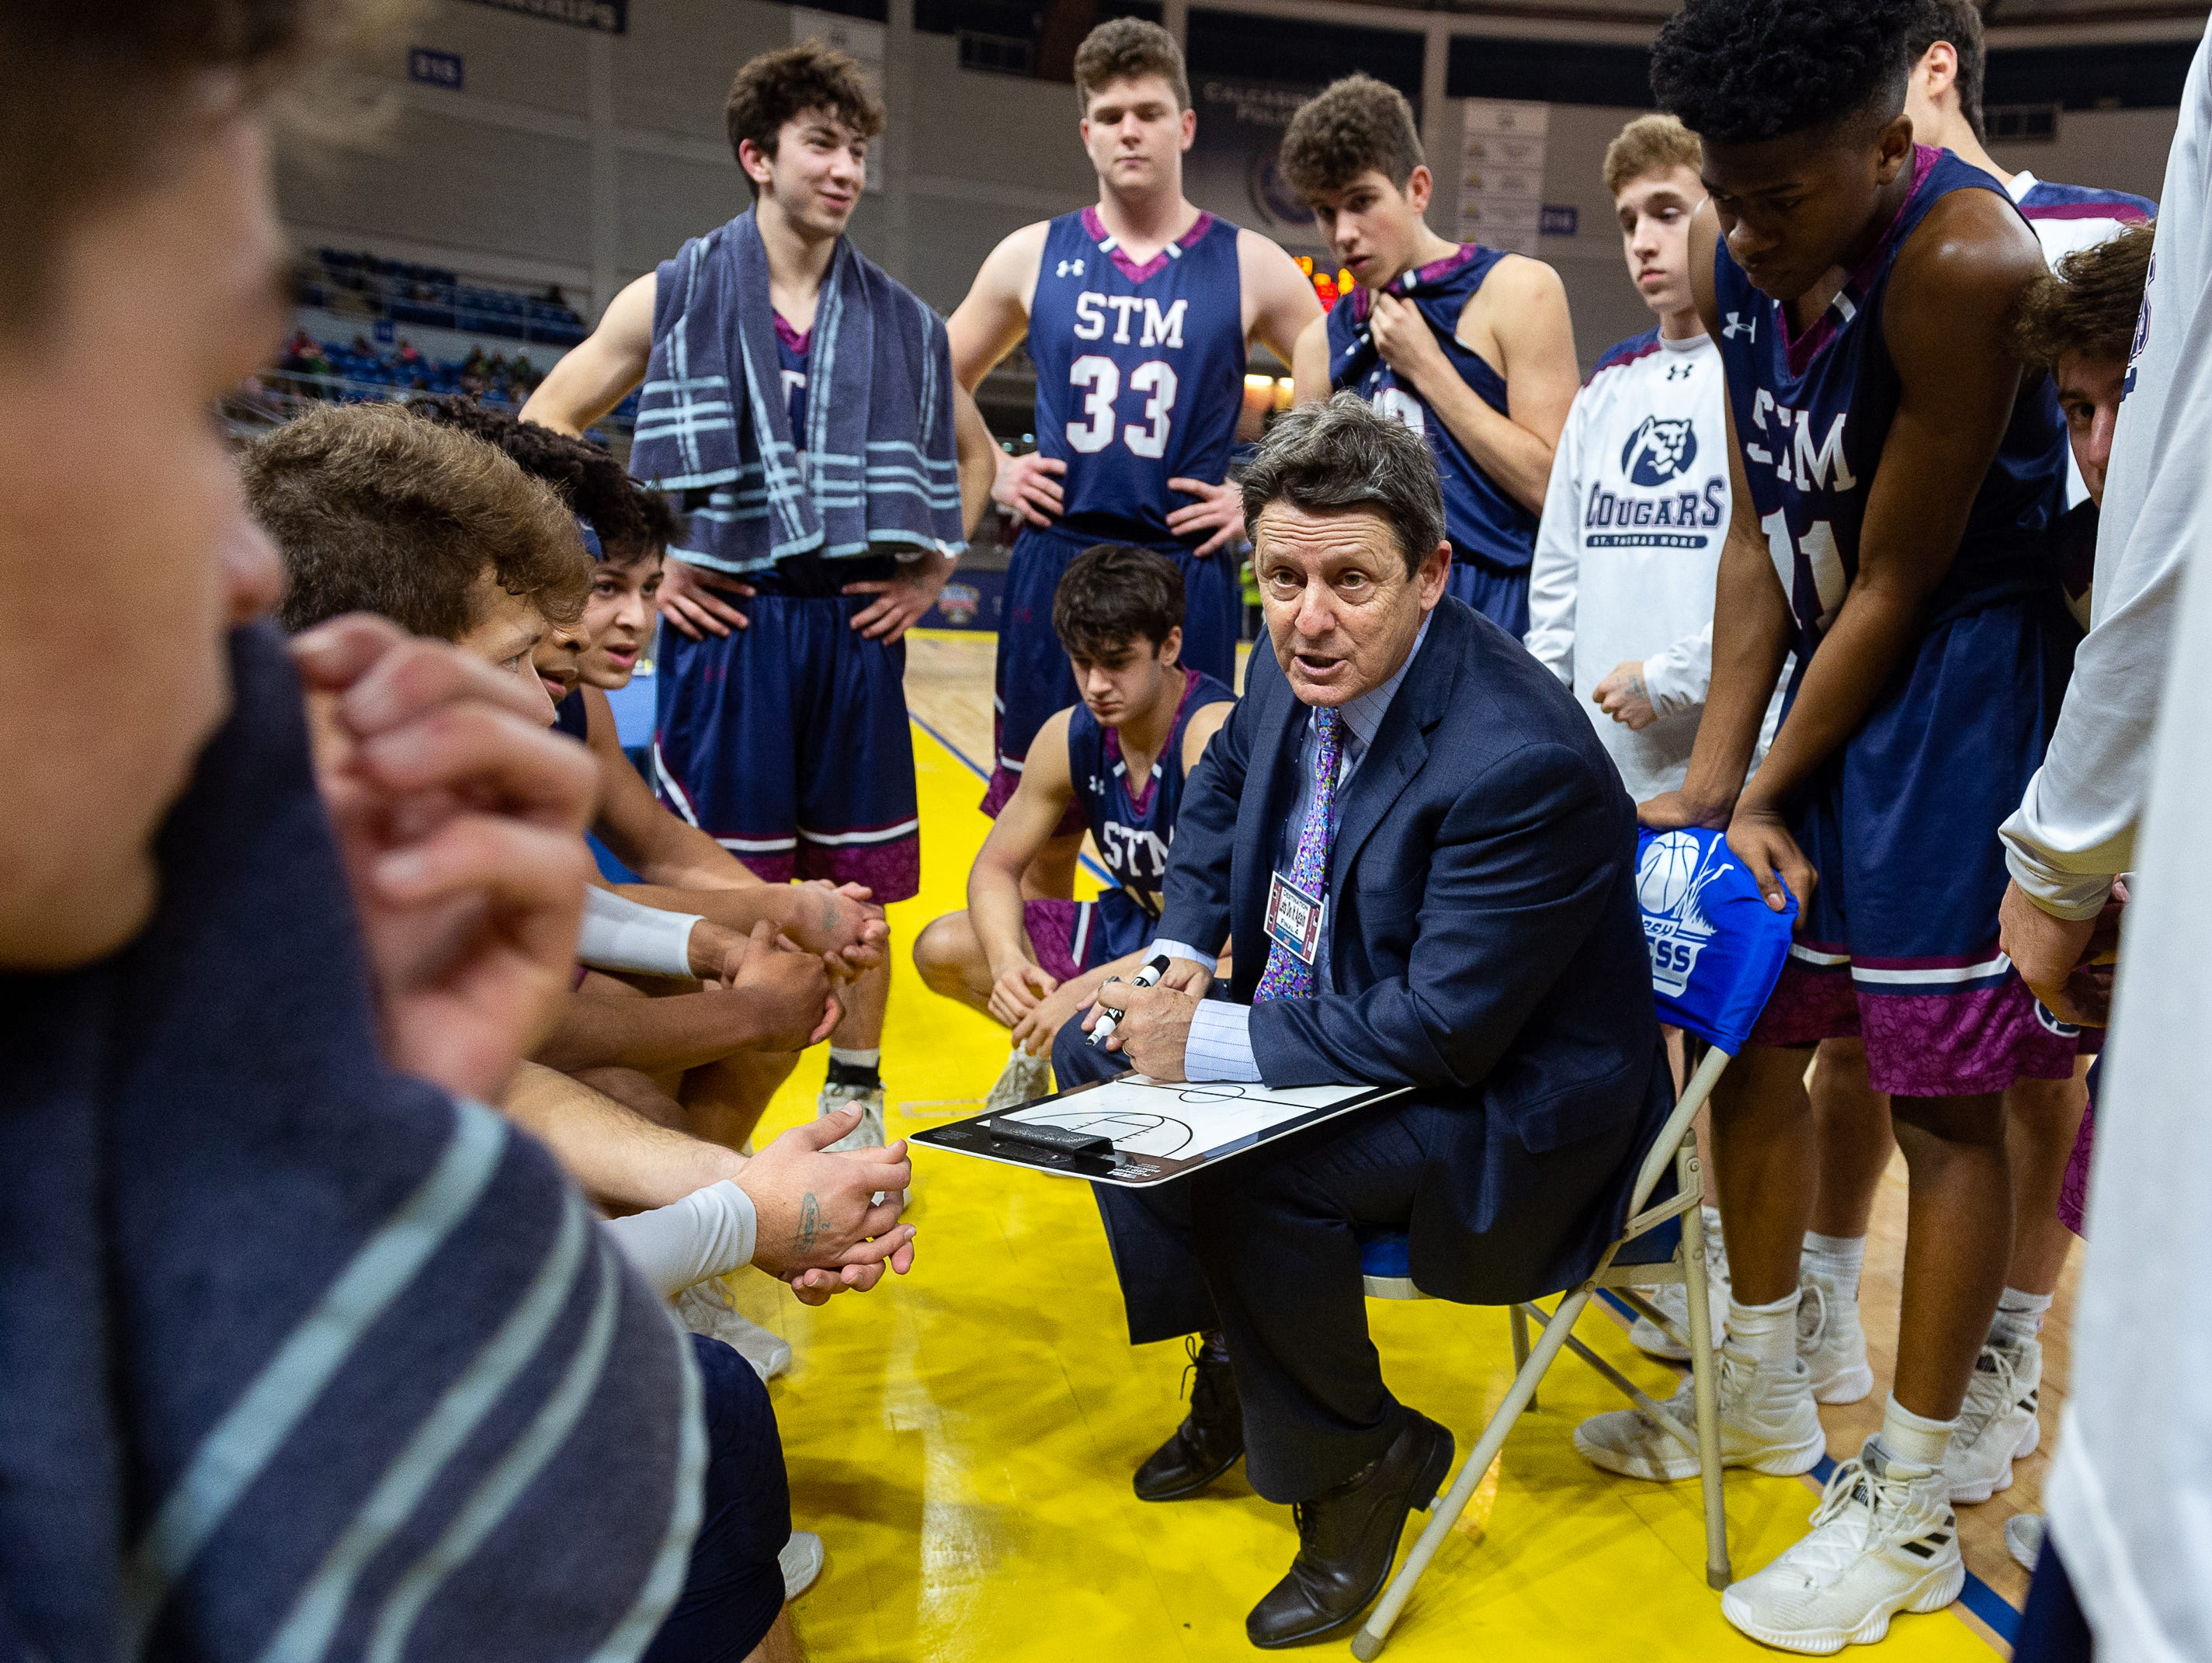 Cougars Head Coach Danny Broussard in the huddle as The STM Cougars beat DeLaSalle in double overtime to win the Allstate Sugar Bowl/LHSAA Boys' Marsh Madness Div II State Championship. Saturday, March 9, 2019.